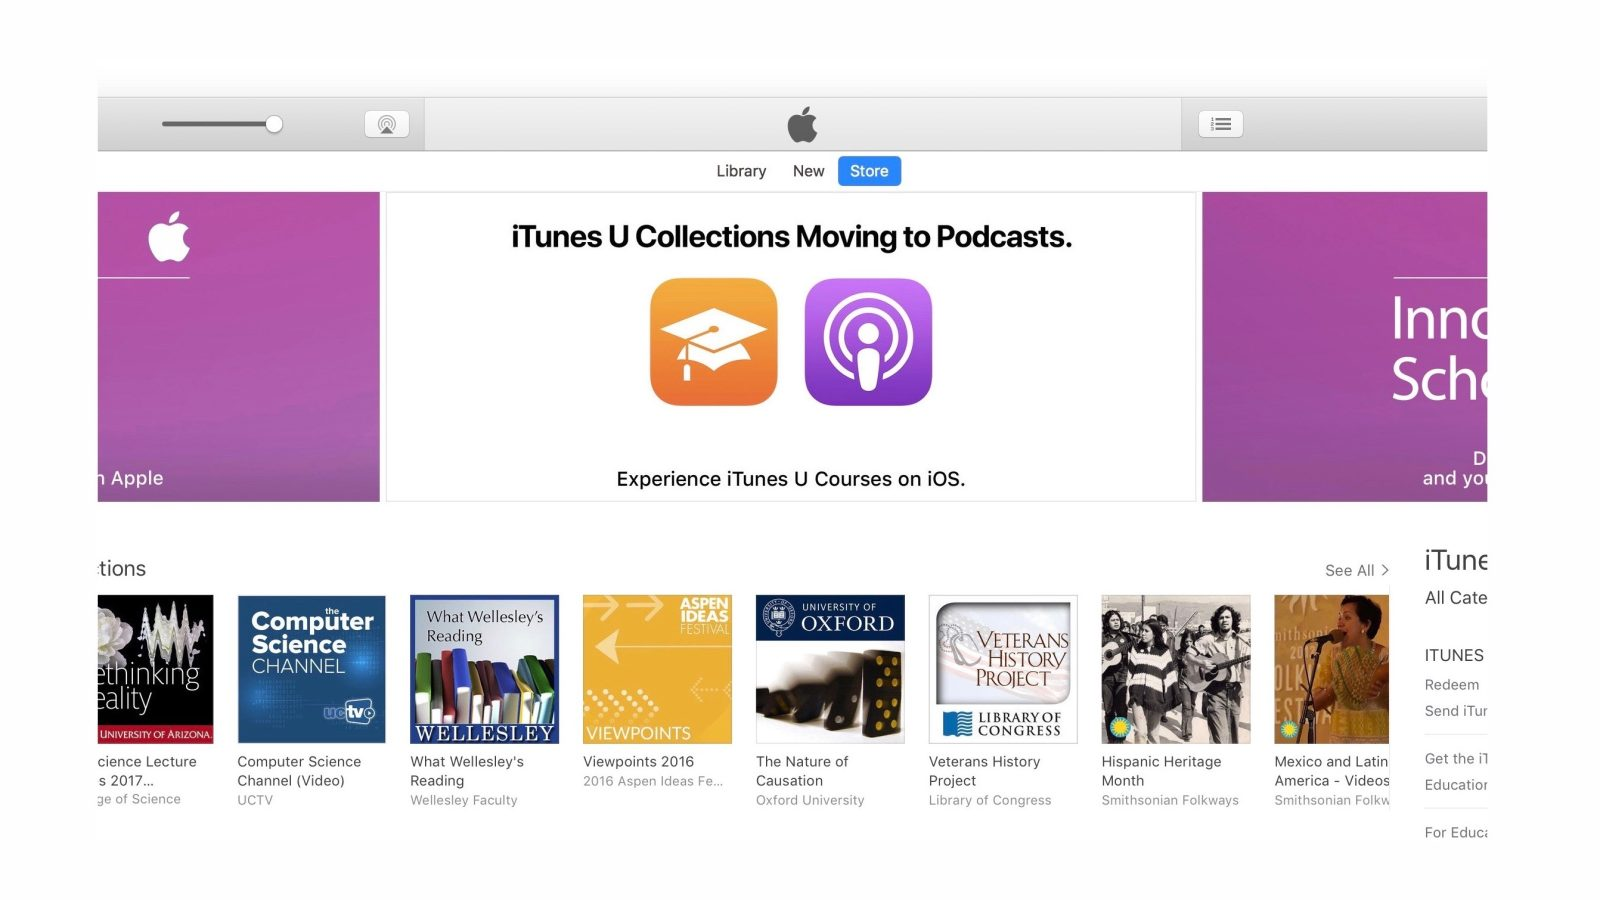 iTunes U Collections officially moved to Podcasts app on iOS